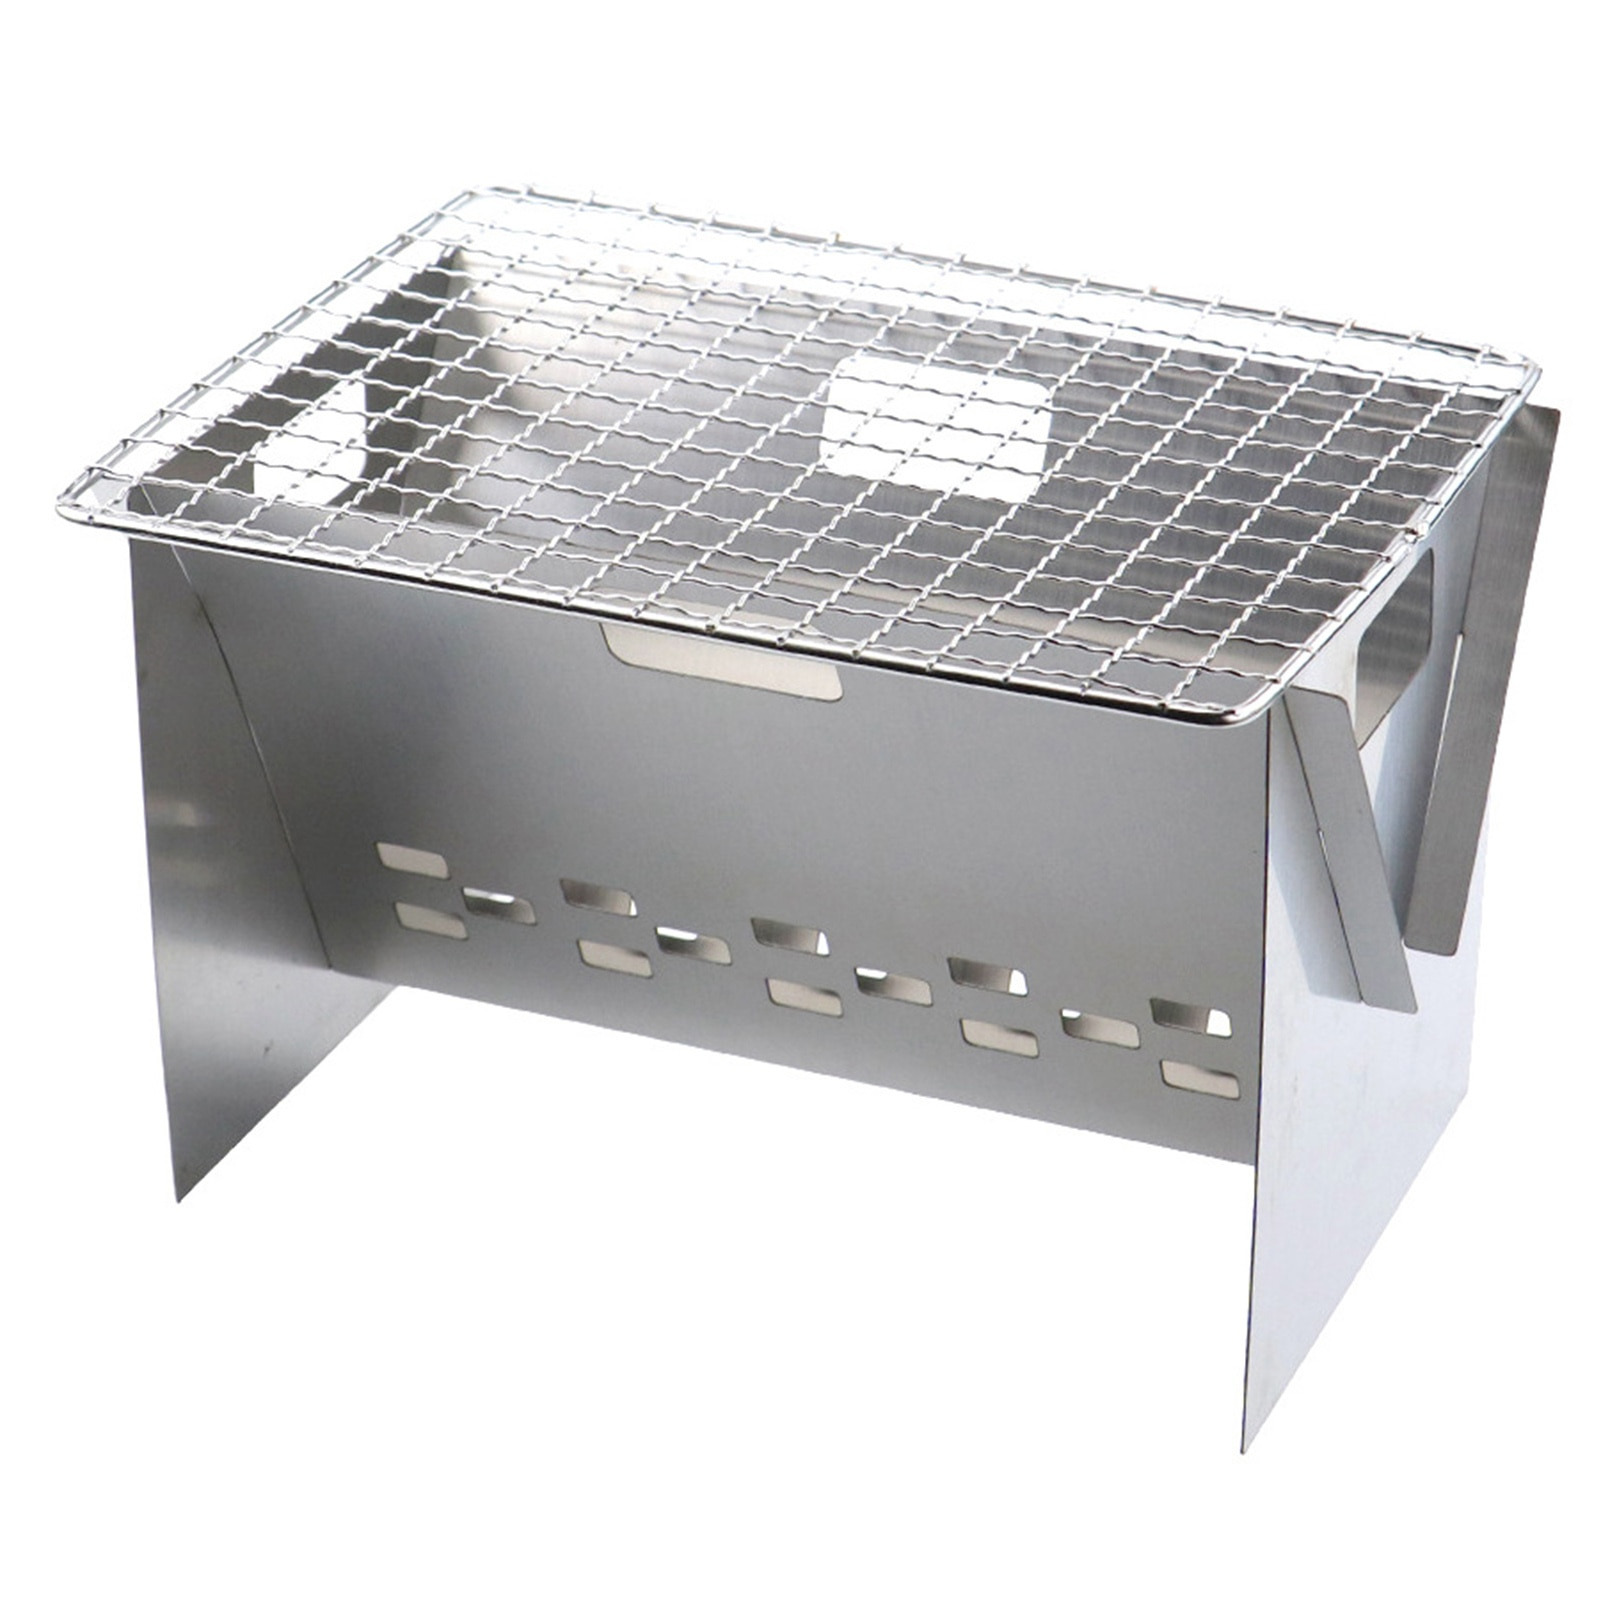 Portable BBQ Grill Folding Stainless Steel Grill Fire Pit Cooking Tool For Outdoor Barbecue Oven Picnic Camping Stove